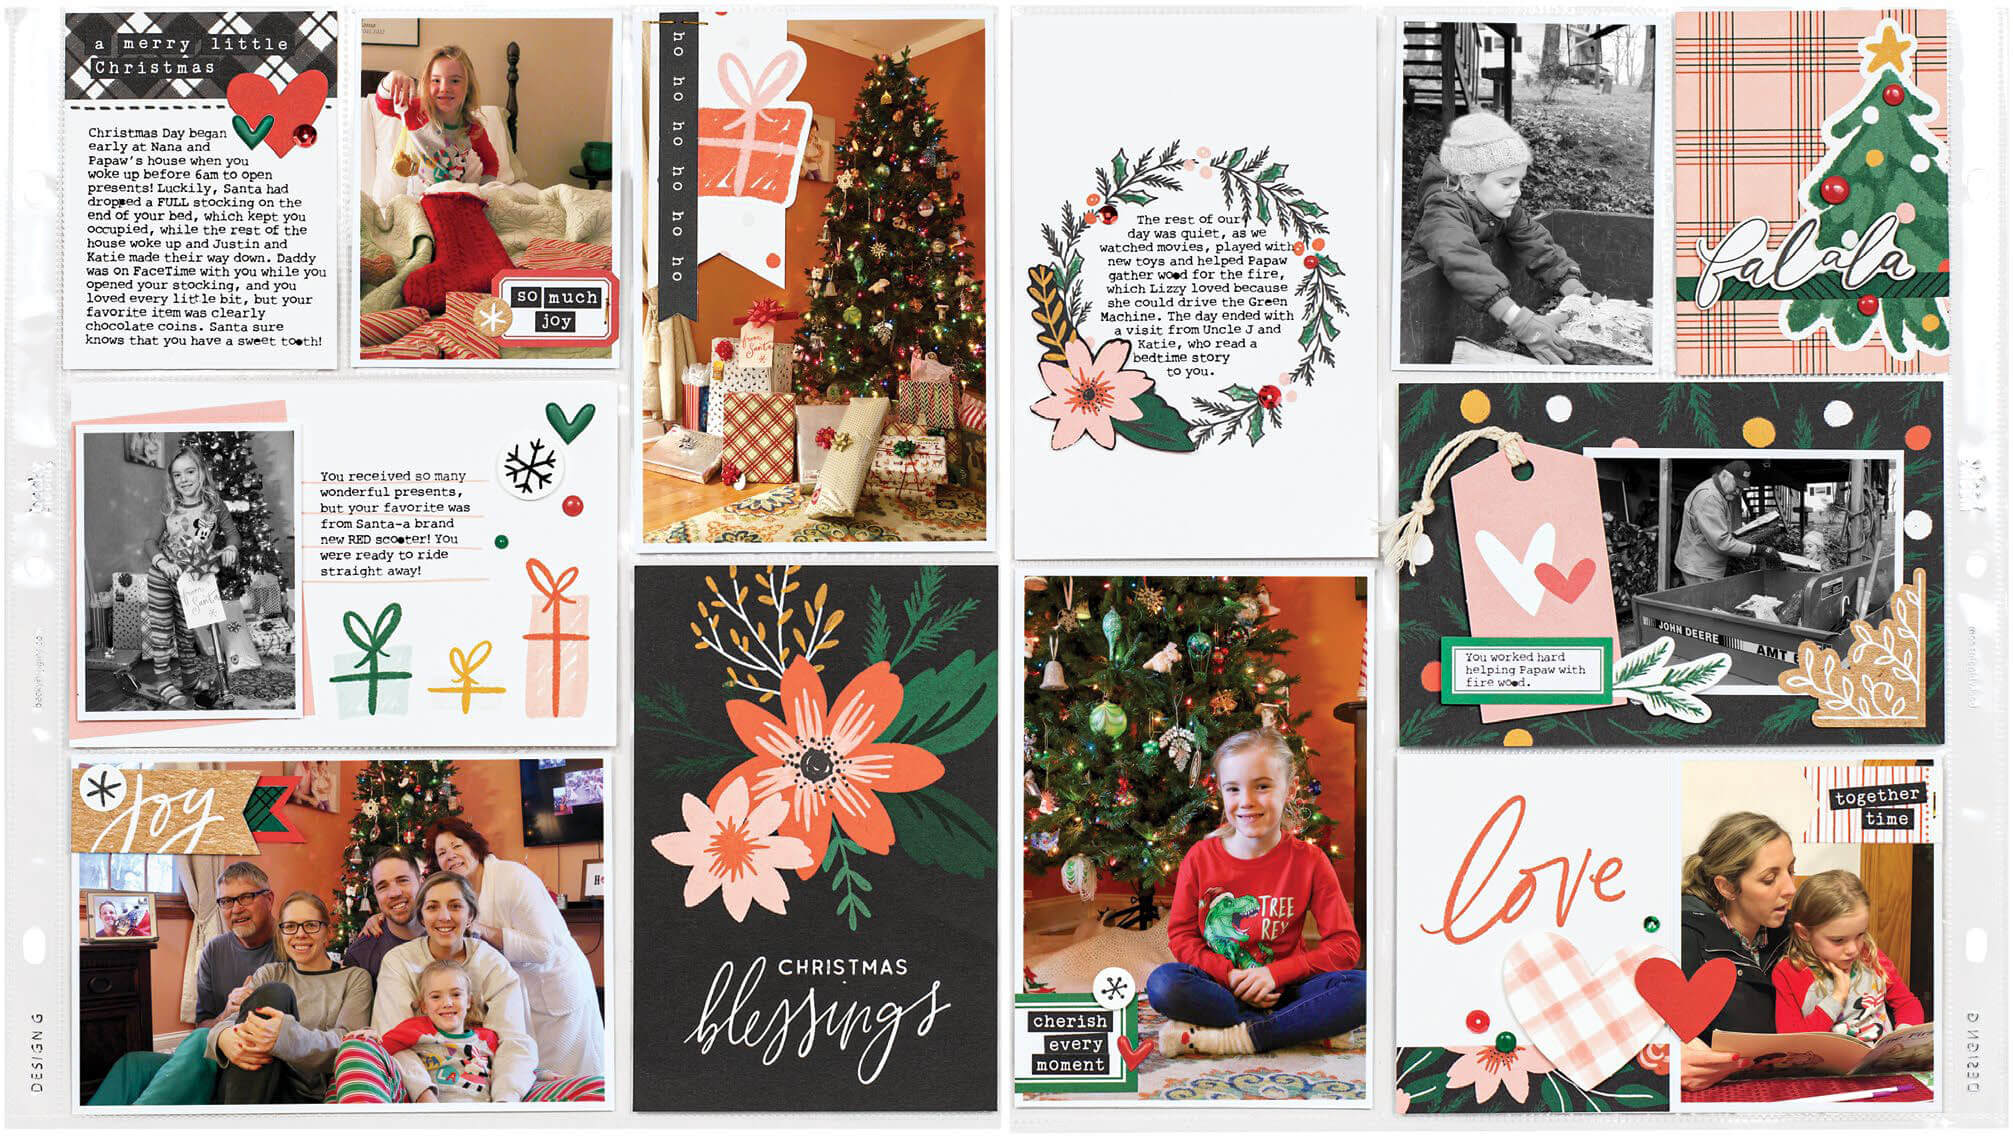 Scrapbook & Cards Today - Winter 2019 - Christmas Blessings by Meghann Andrew